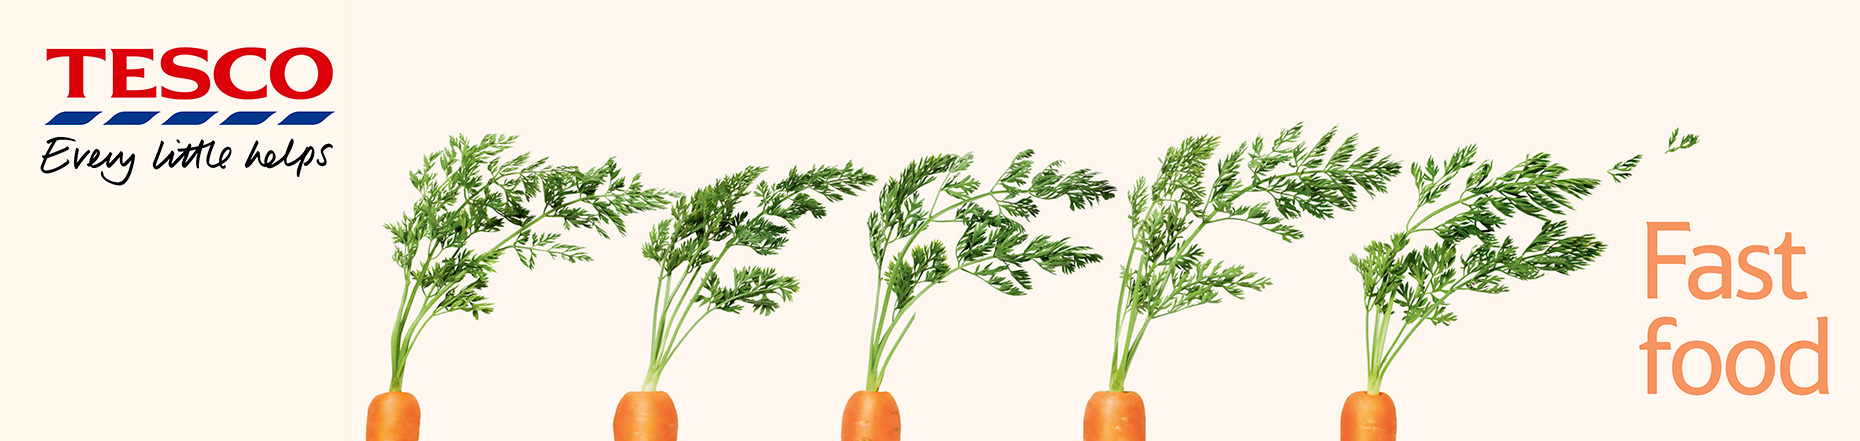 Tesco Carrots | Colin Campbell-Food Photographer